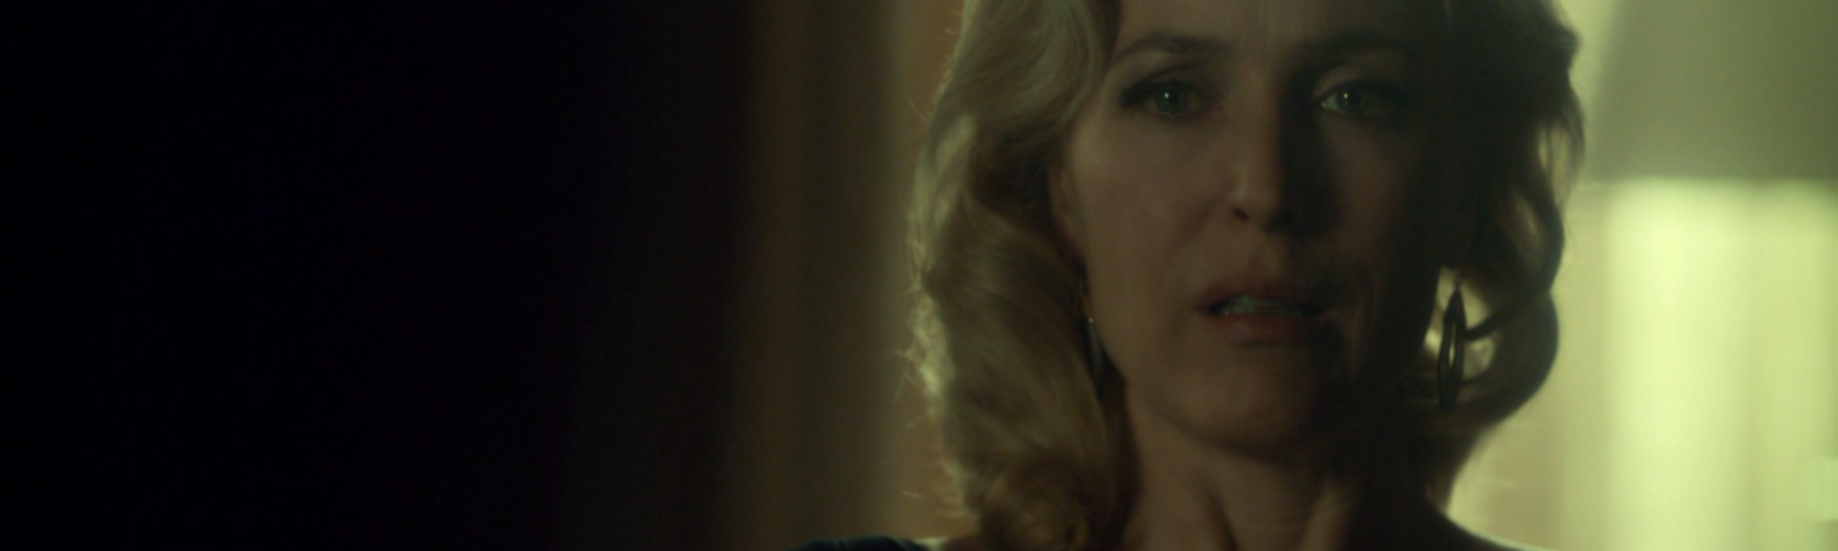 The Wrath of the Lamb Part V — The Final Session with Bedelia